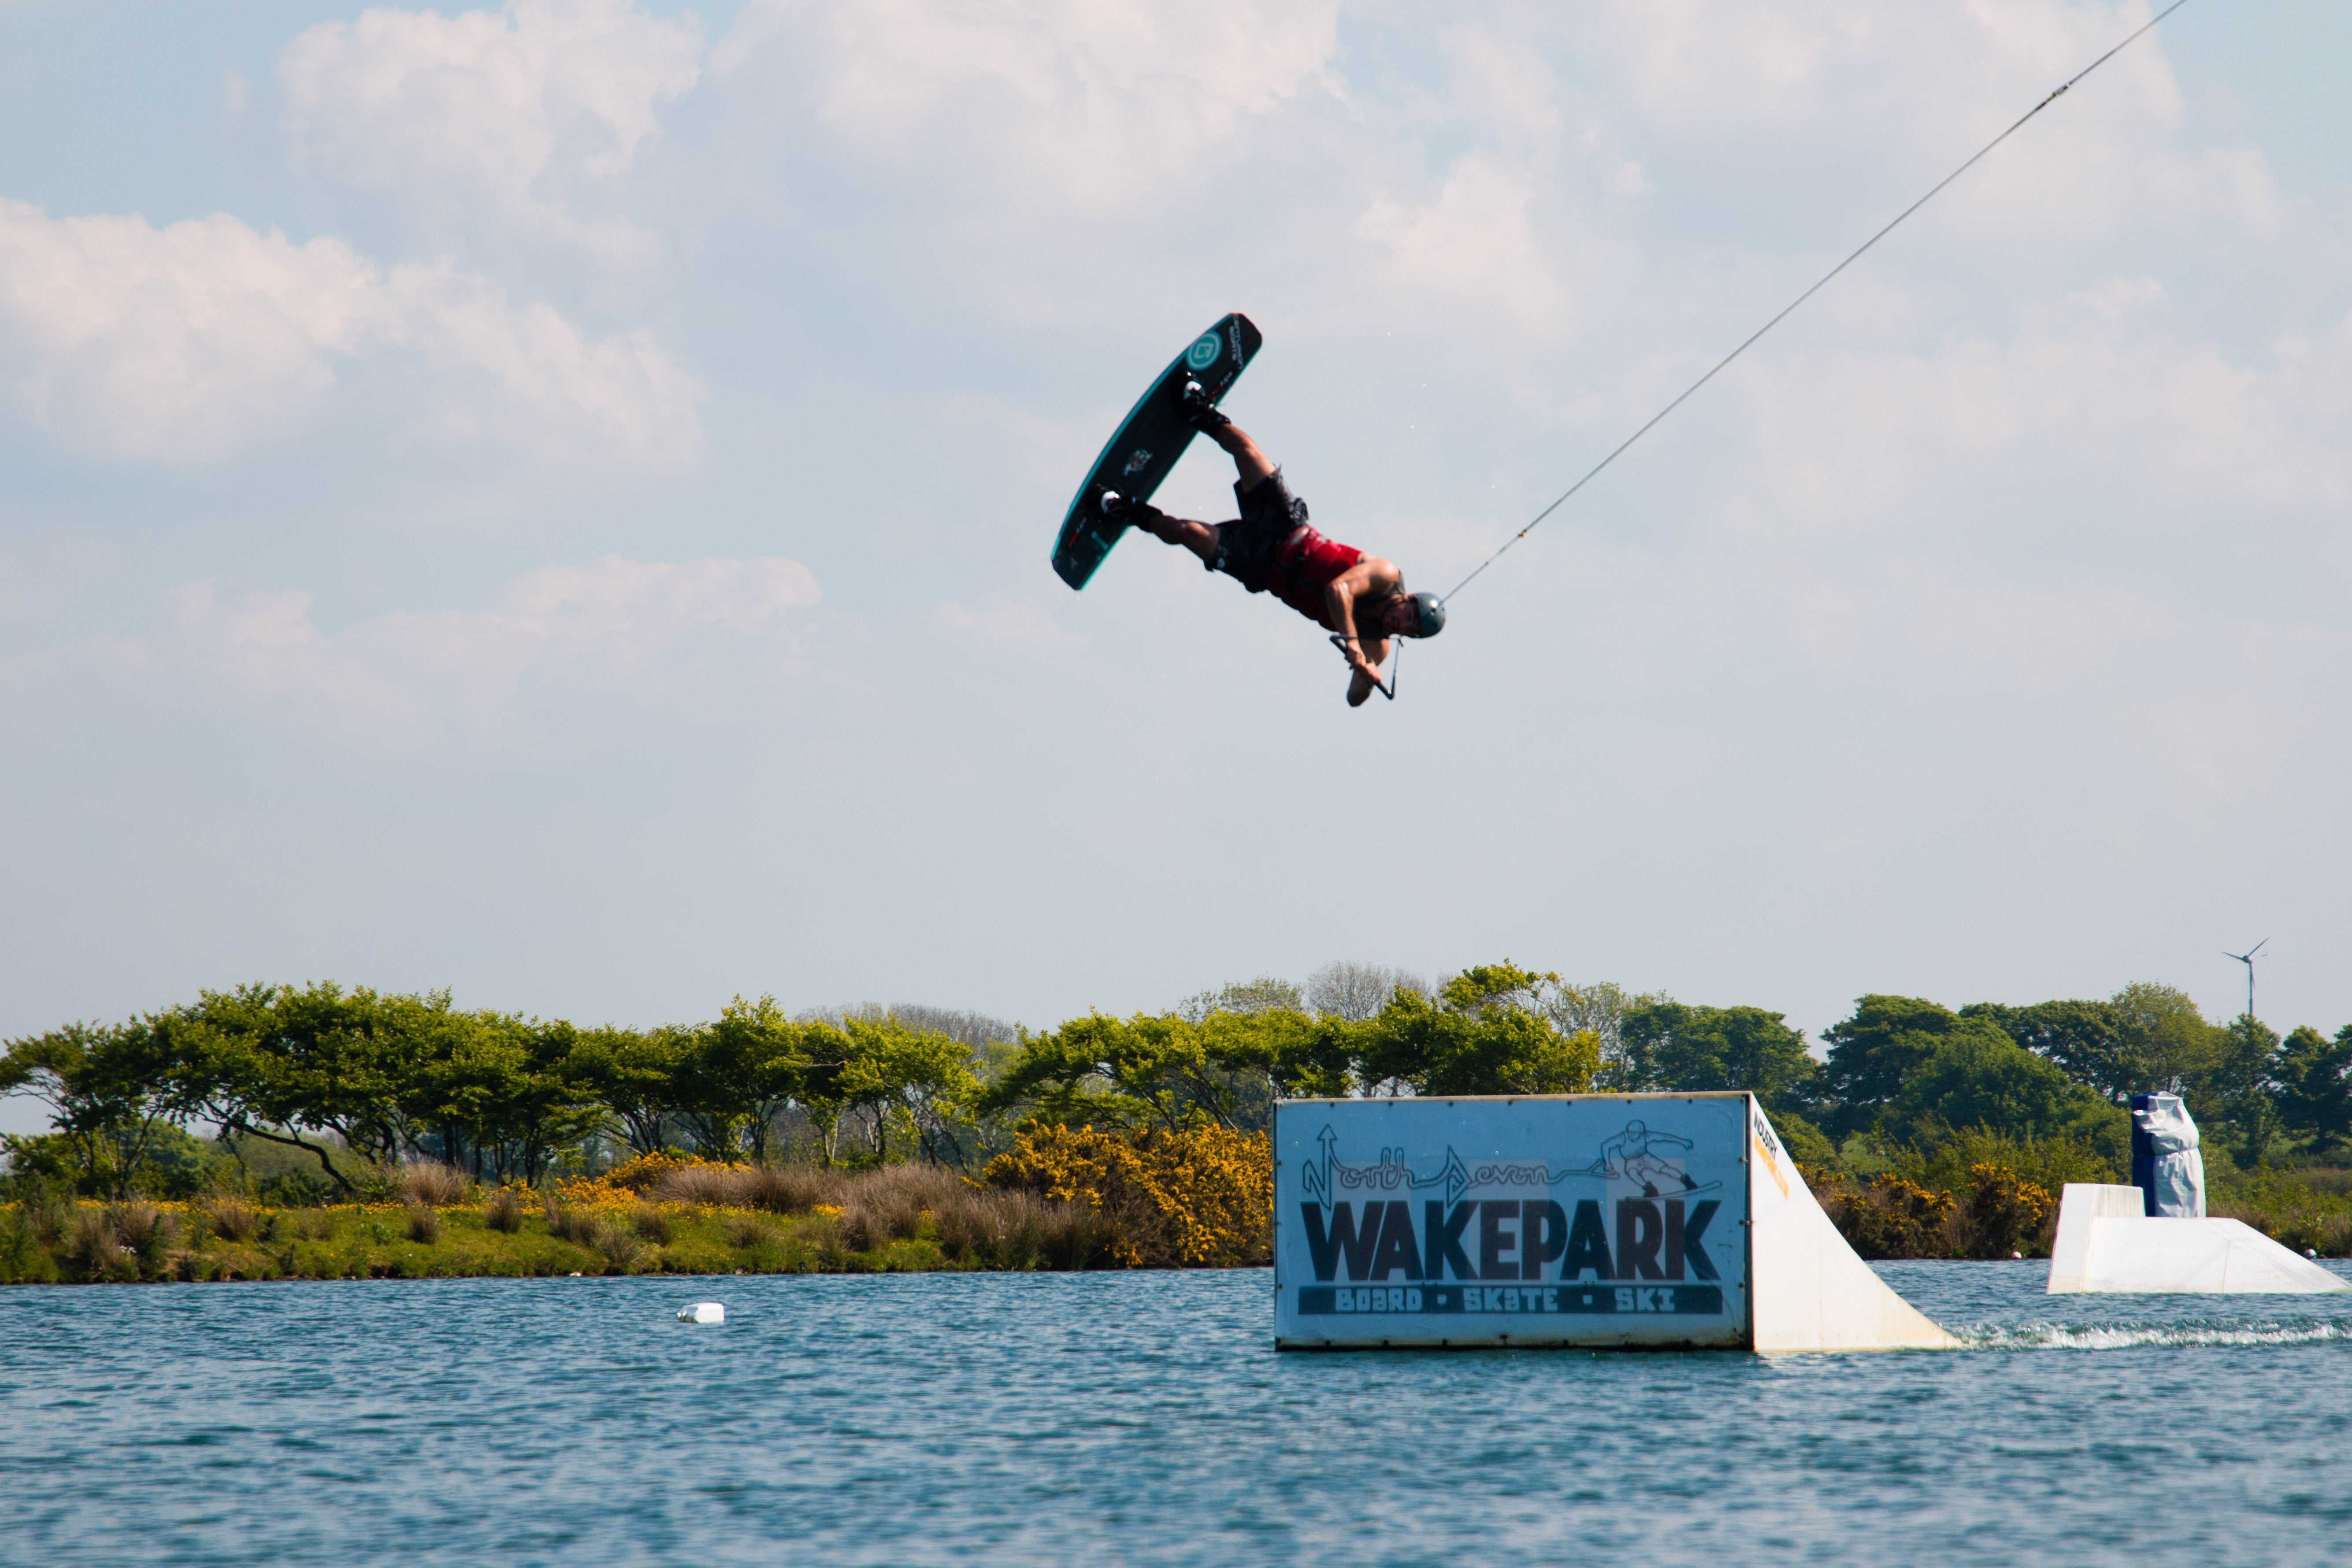 David O'Caoimh - Pro Wakeboarder